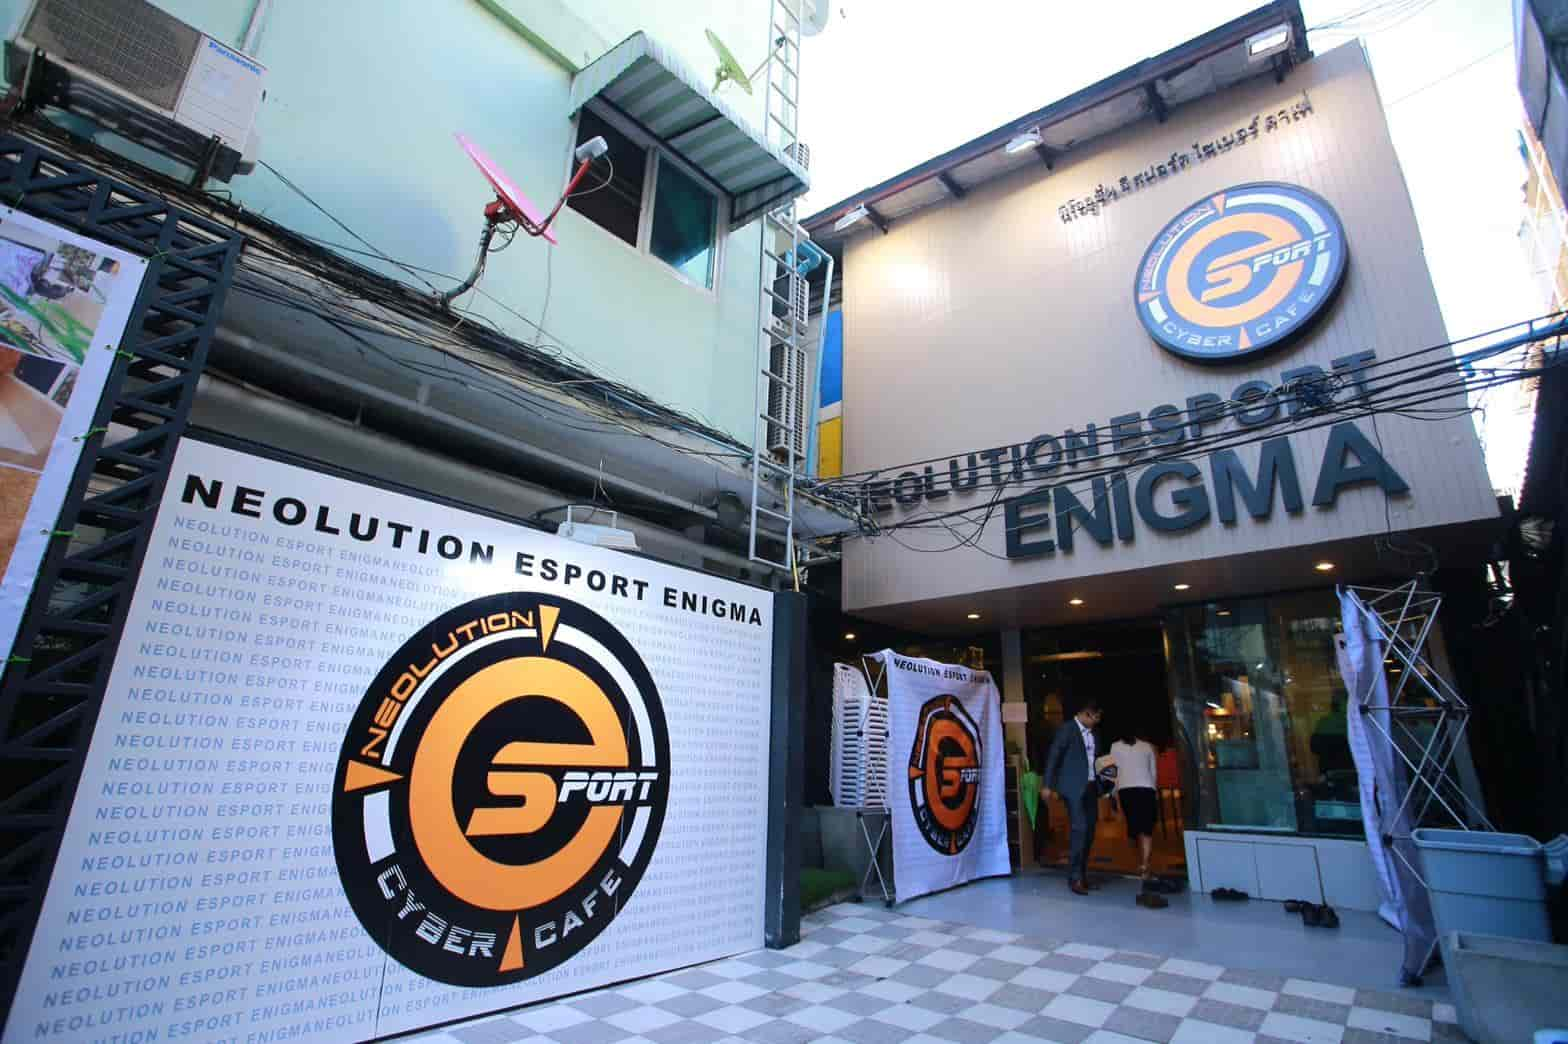 neolution-esport-enigma-cafe